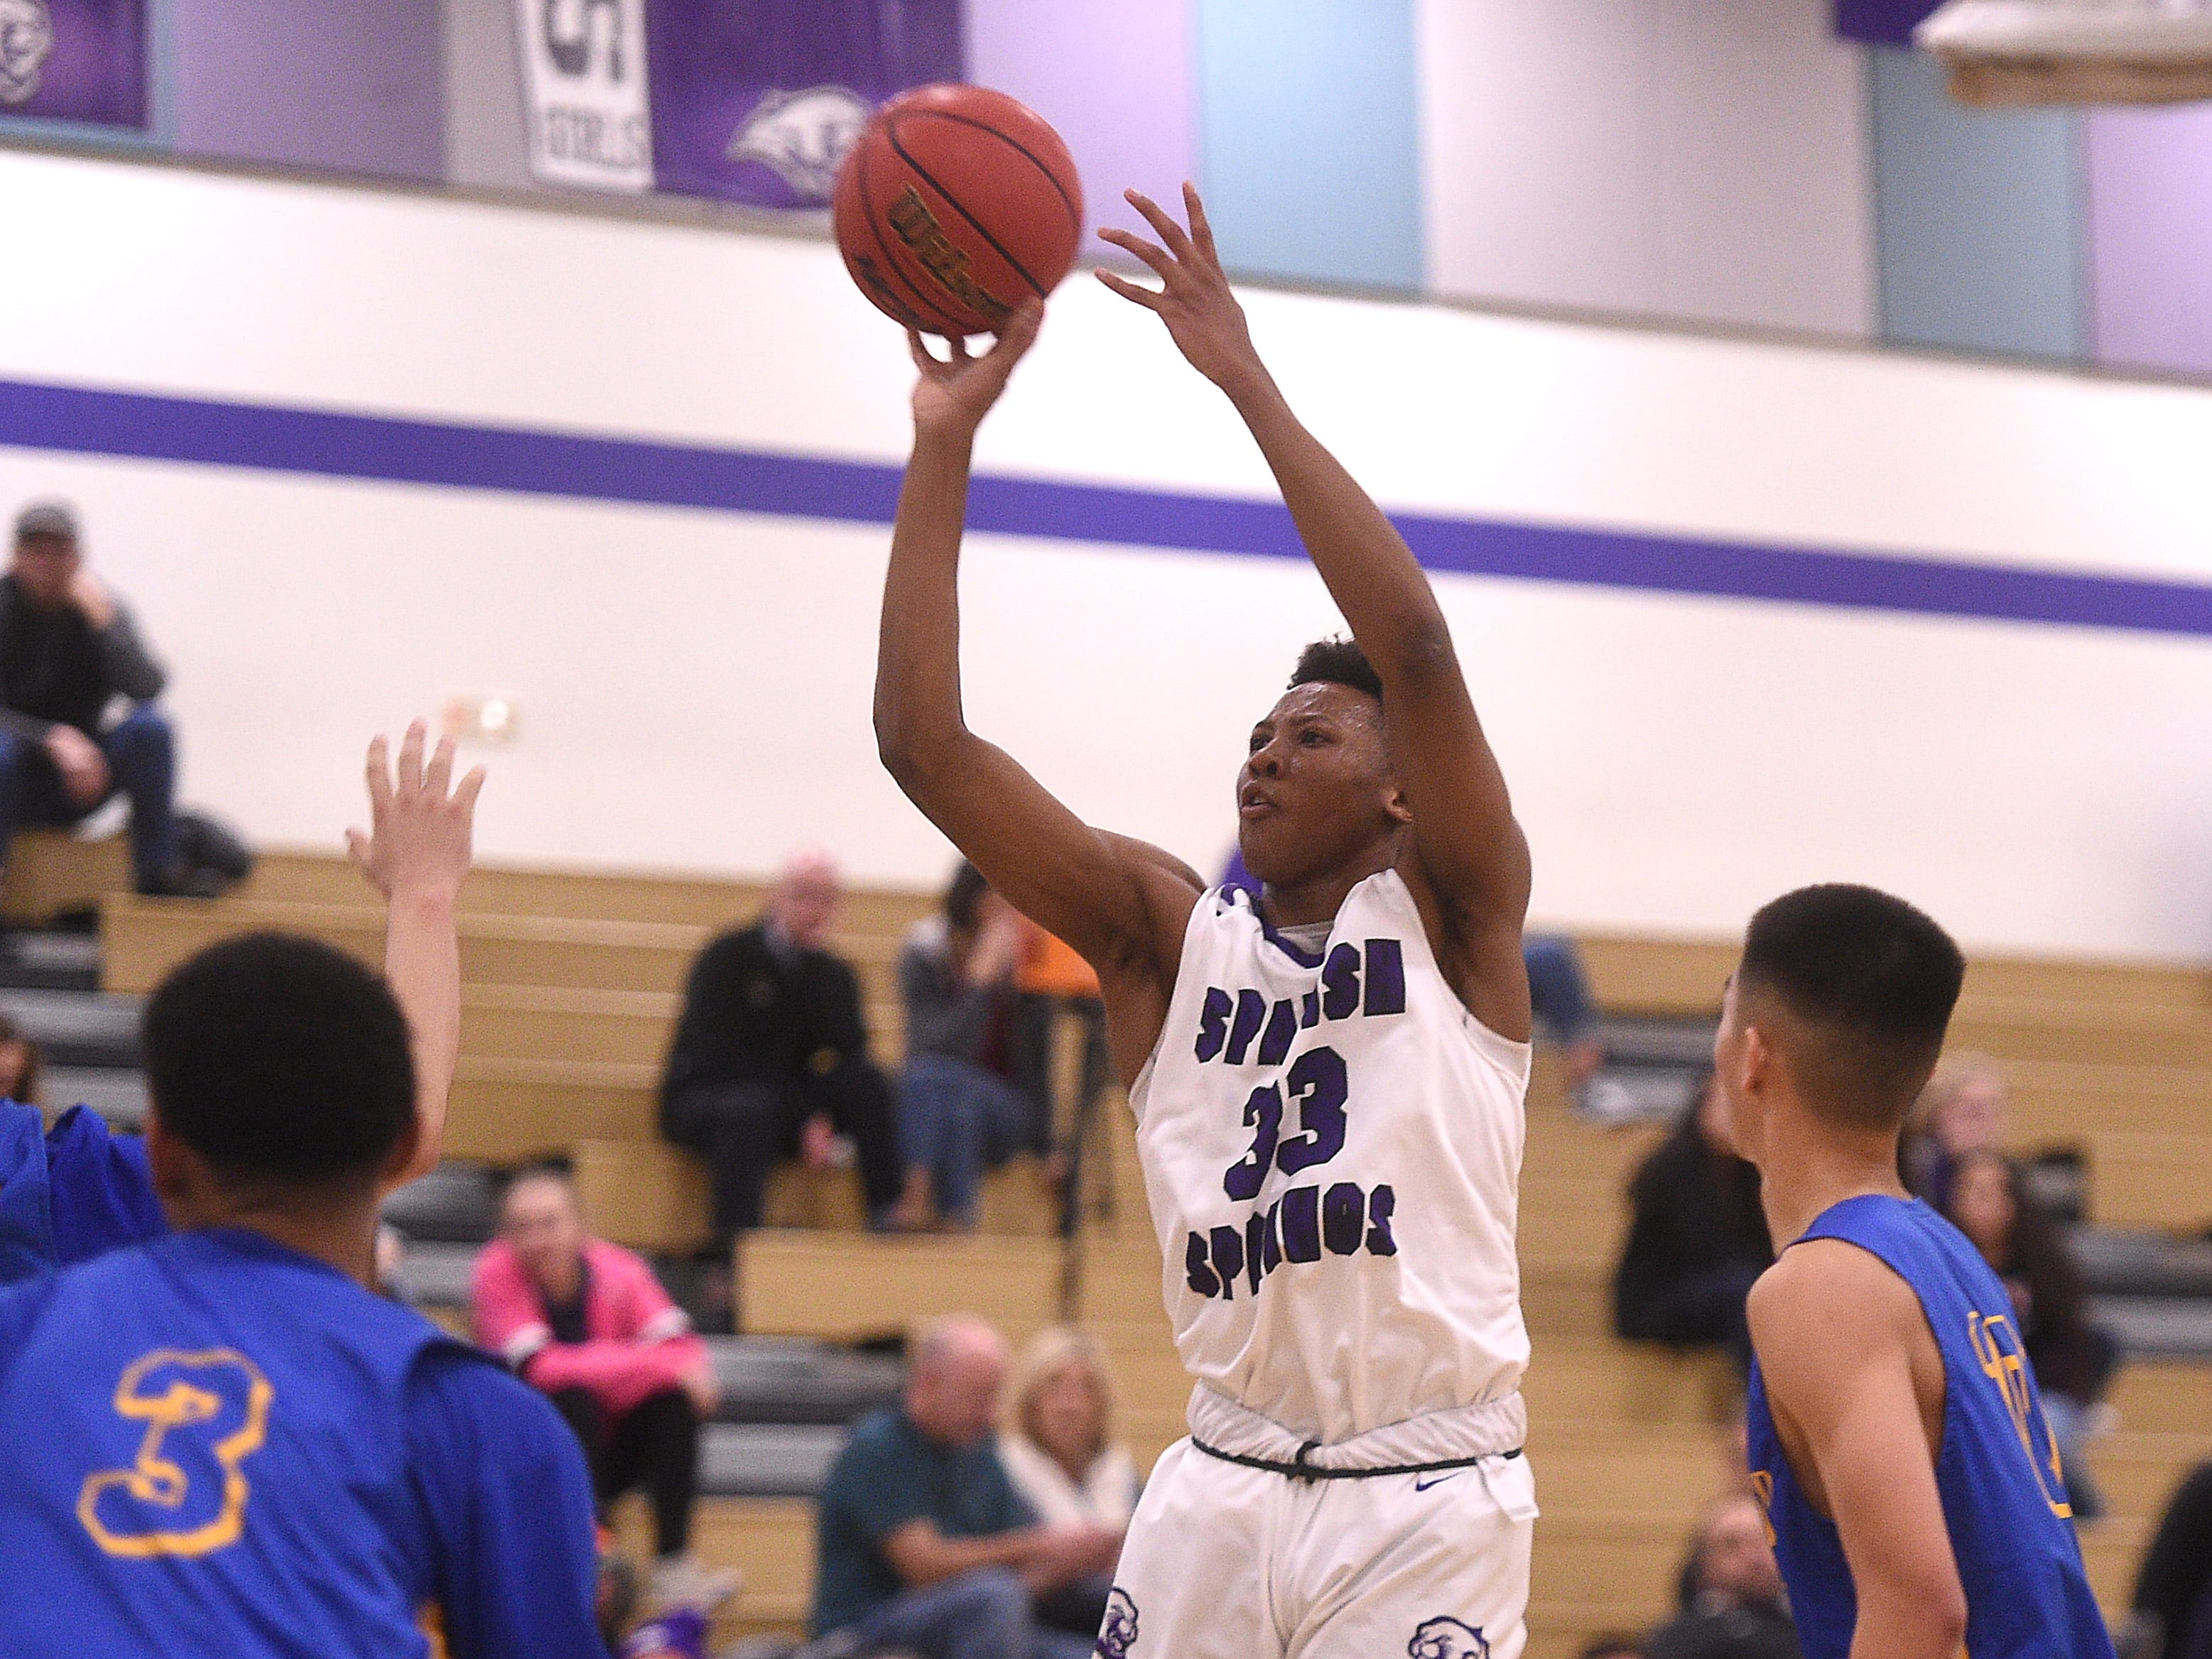 Spanish Springs' Cordell Stinson (33) shoots while taking on Lincoln during their basketball game in Reno on Jan. 4, 2019.